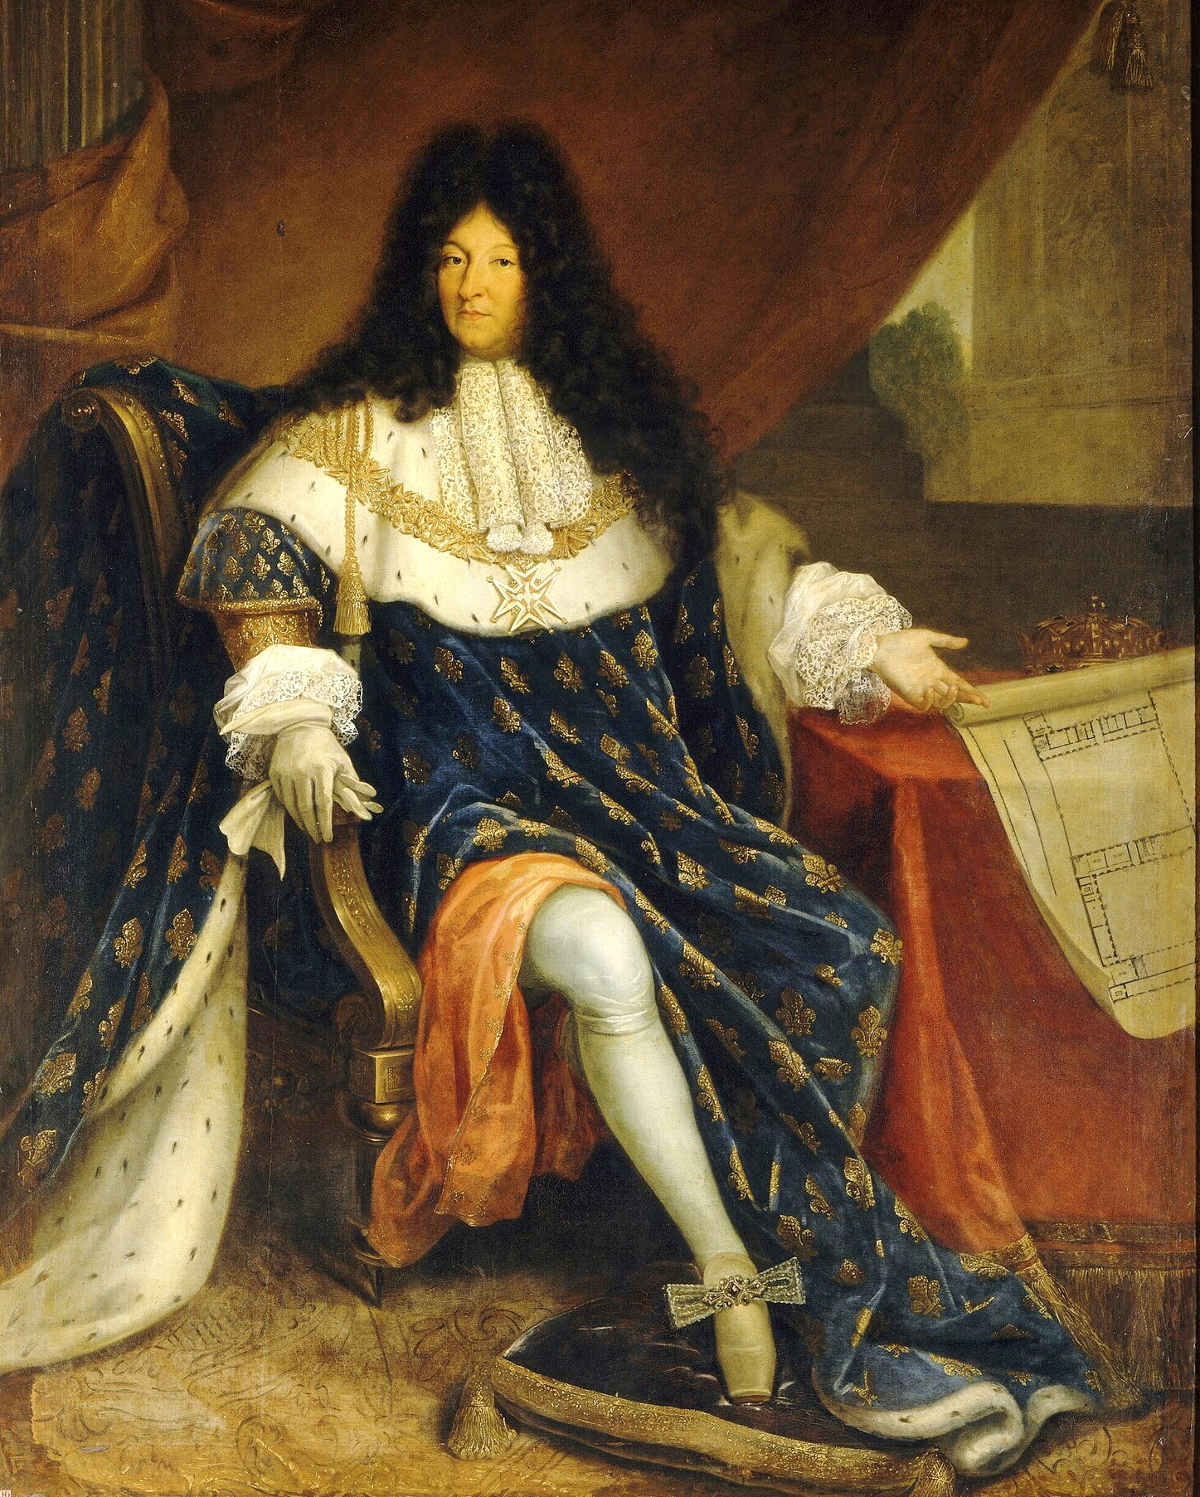 Louis XIV of France by Nicolas-René Jollain Le Vieux